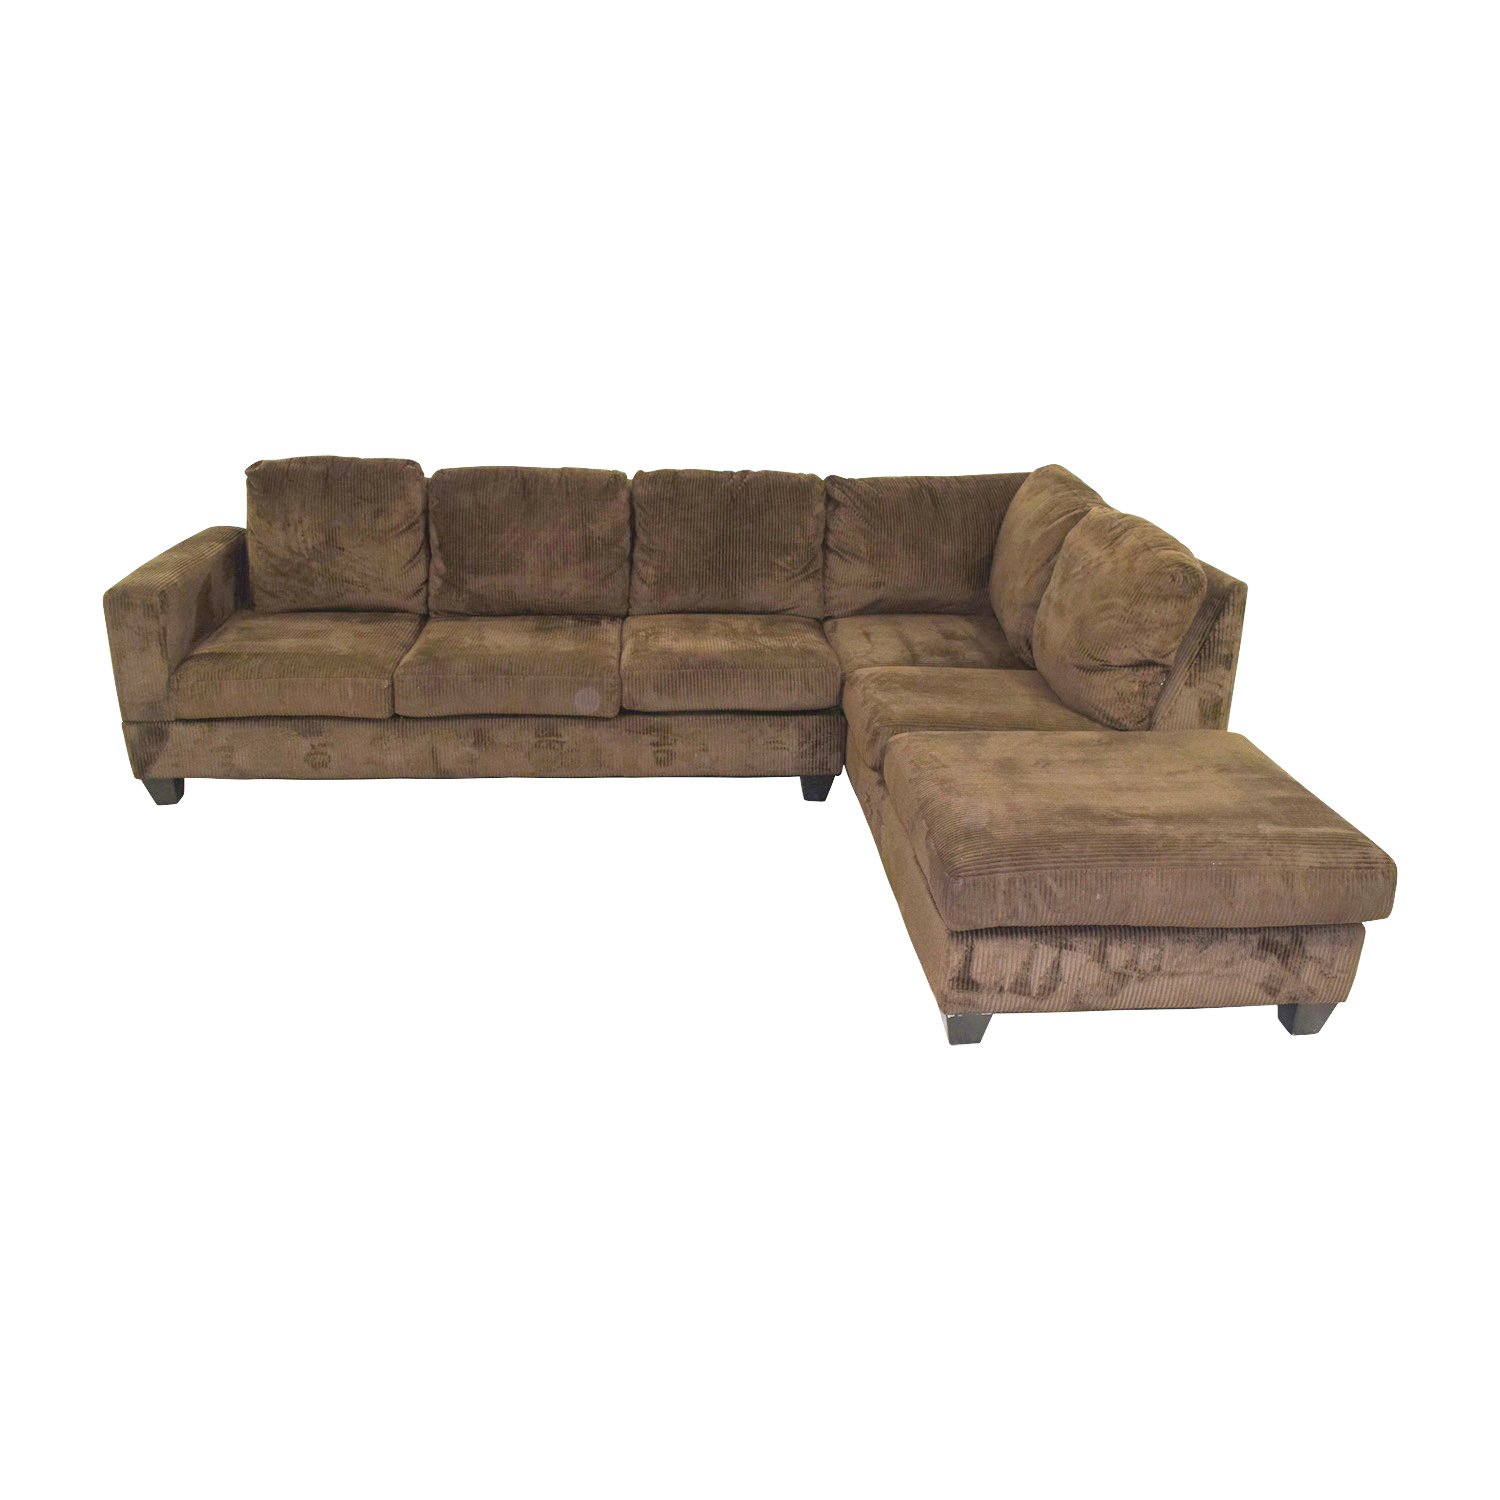 Outstanding 80 Off Jennifer Furniture Jennifer Convertibles Corduroy Brown Sectional Sofas Creativecarmelina Interior Chair Design Creativecarmelinacom